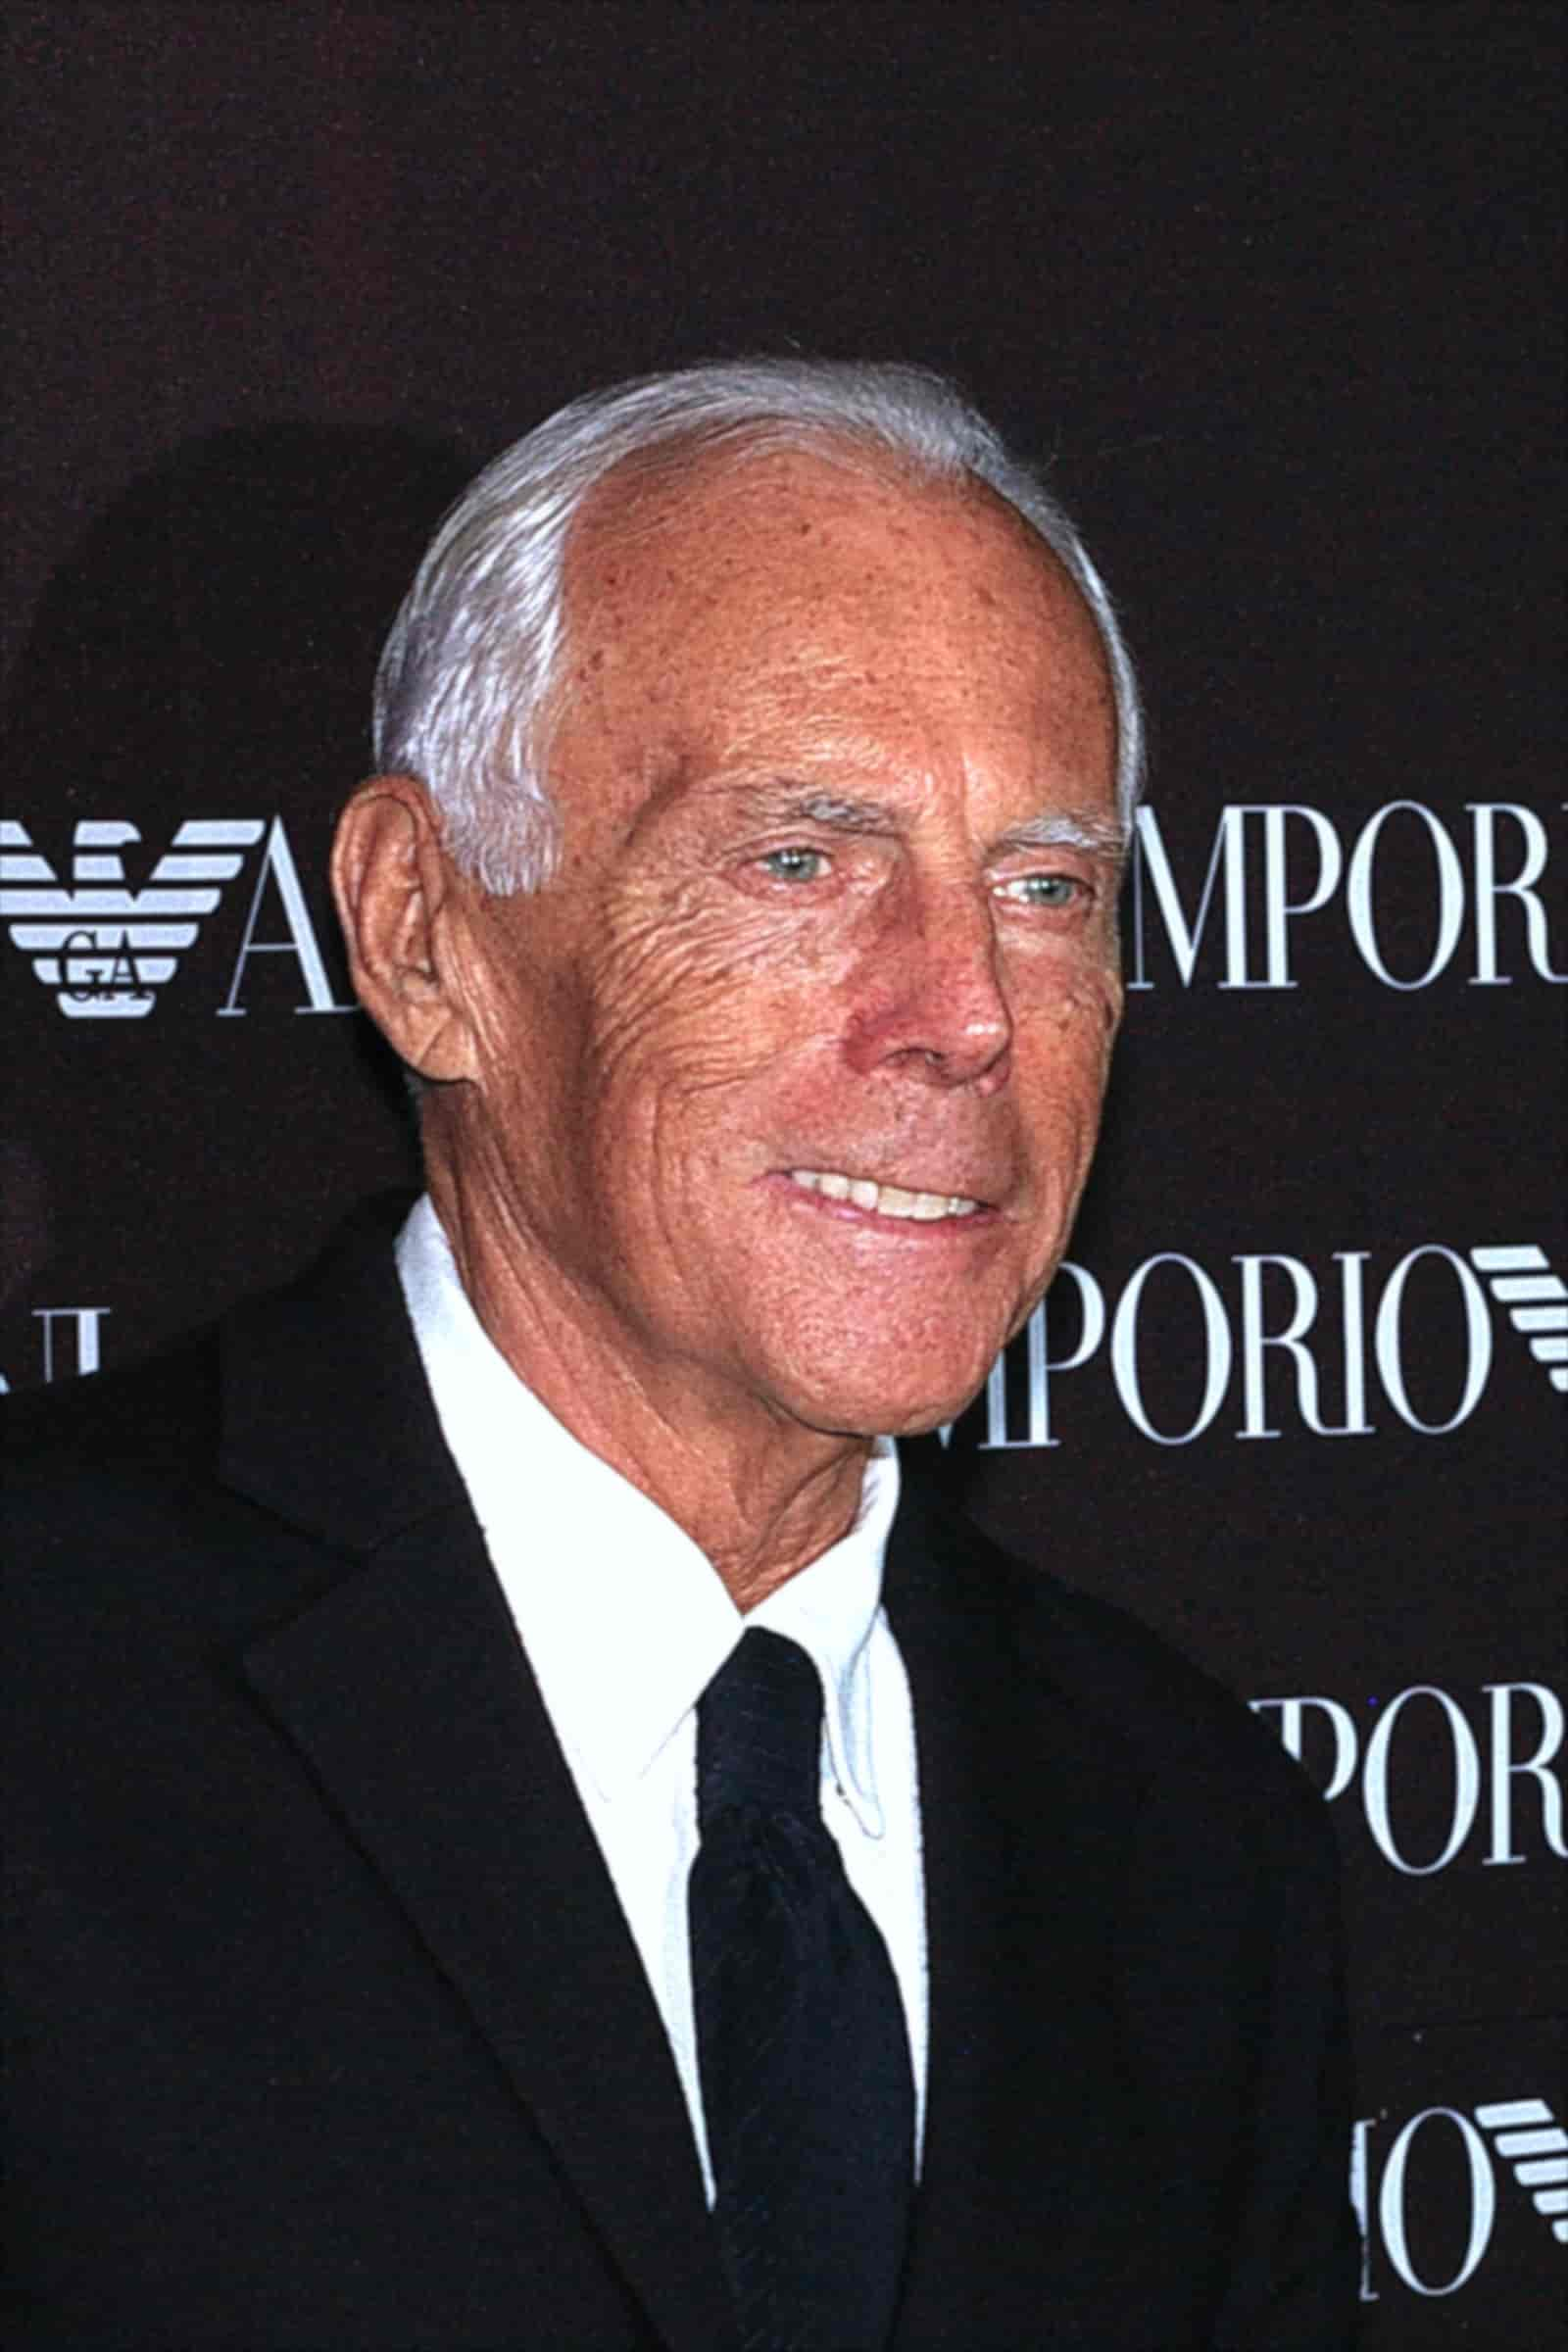 Giorgio Armani Portrait Photo